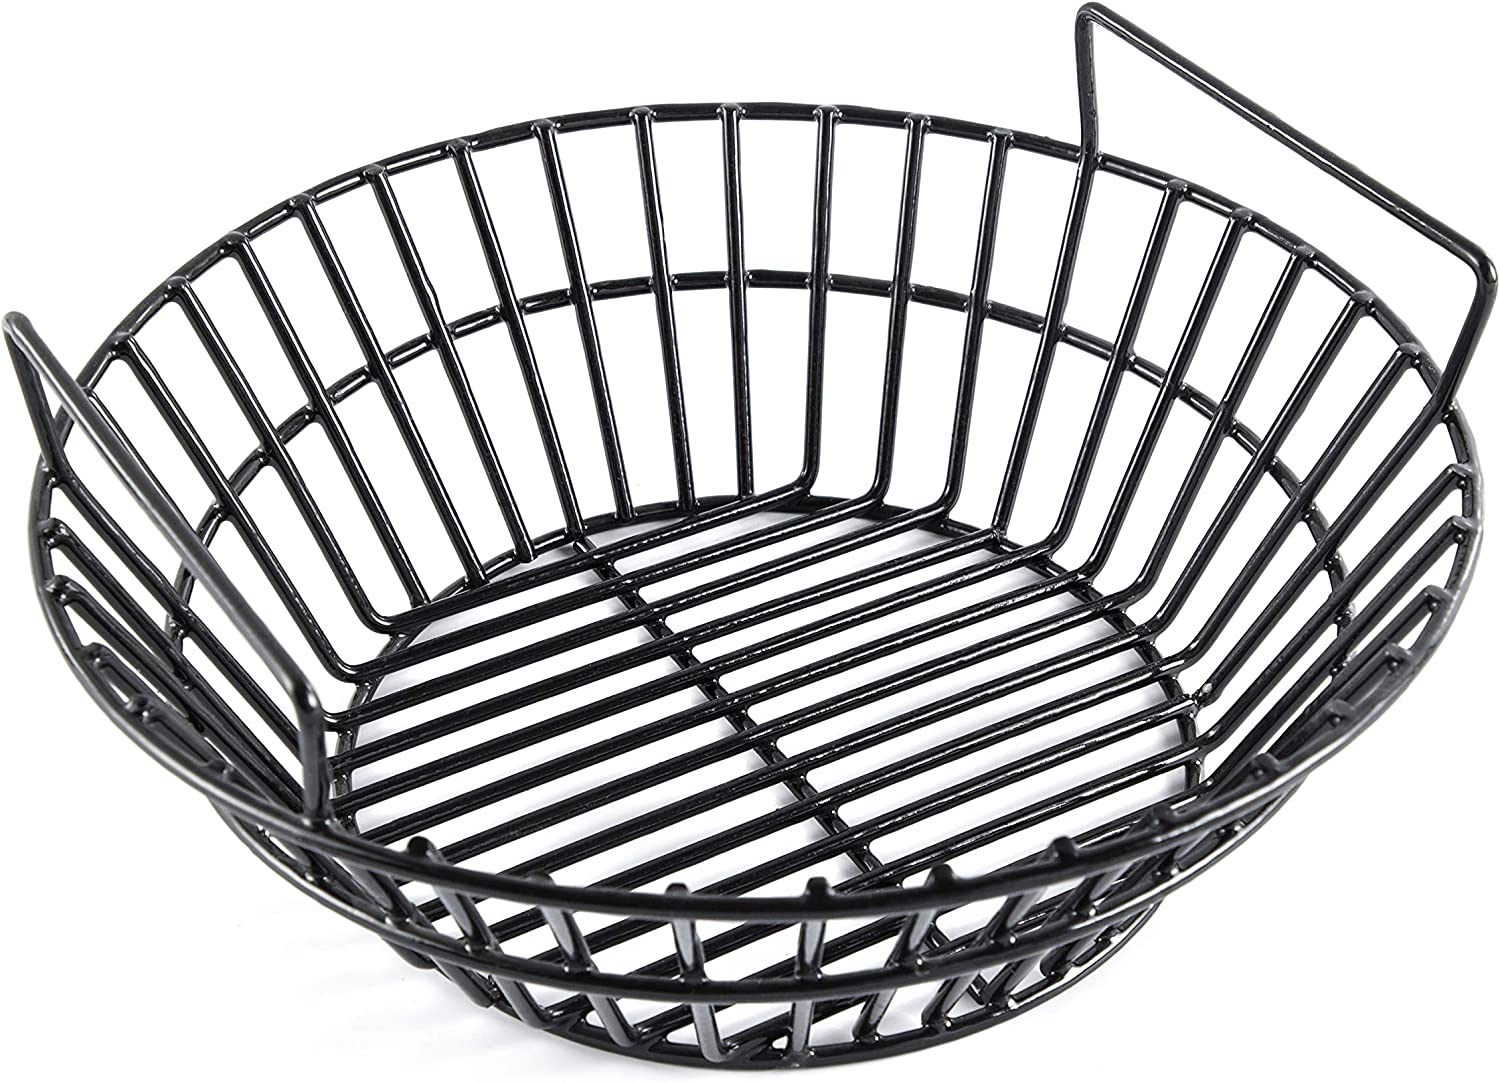 EasiBBQ Charcoal Ash Basket for Large Big Green Egg Grill, Kamado Classic, Pit Boss, Louisiana Grills, Primo Kamado Grill and Large Grill Dome, Heavy Duty Porcelain Steel